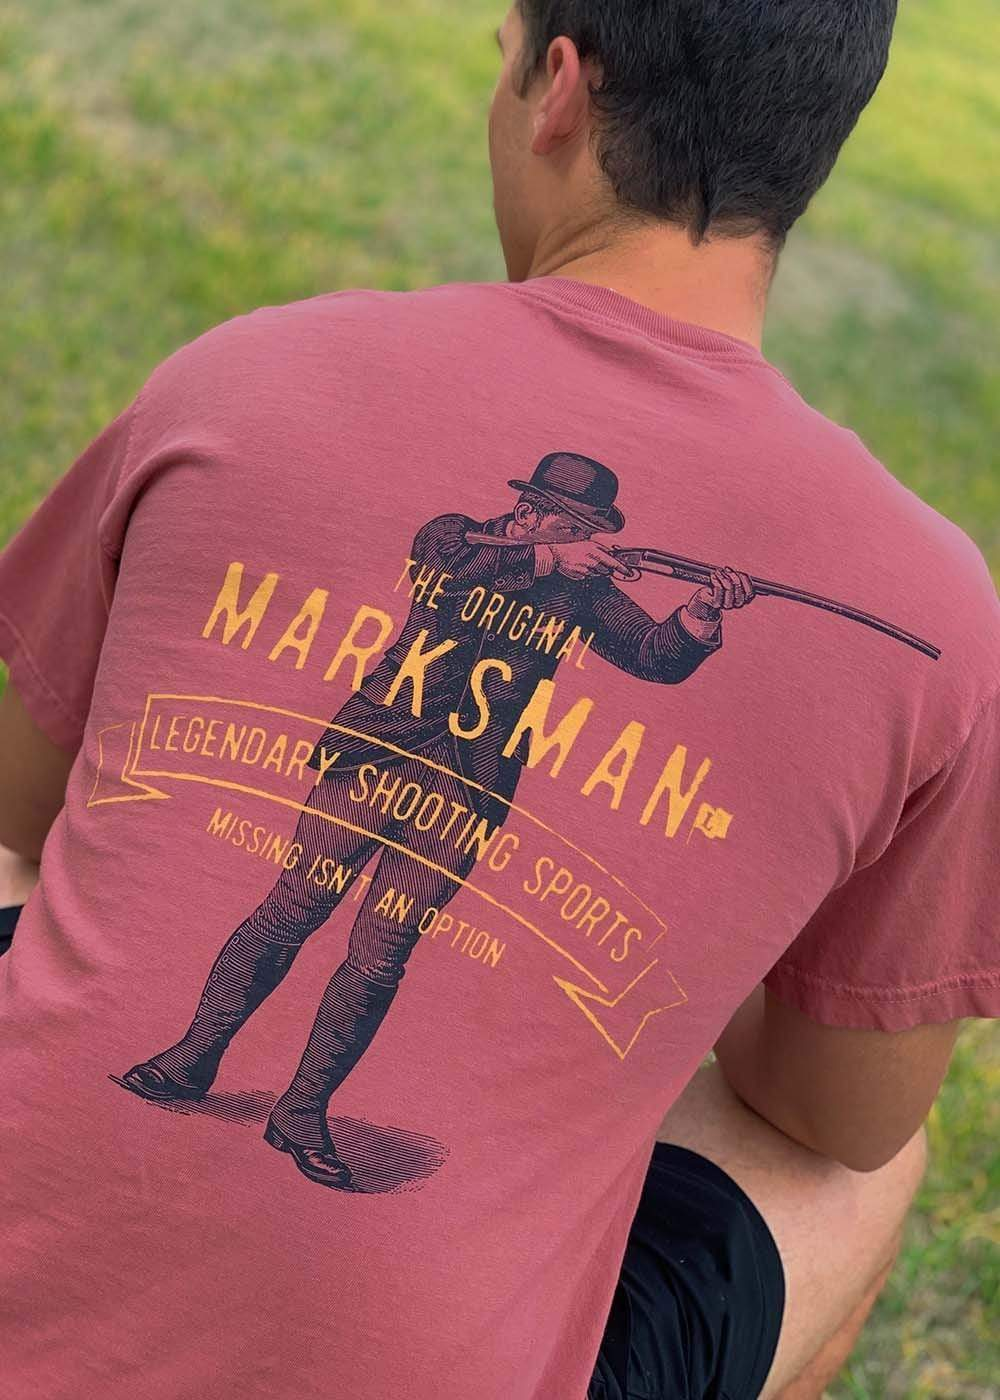 The Original Marksman